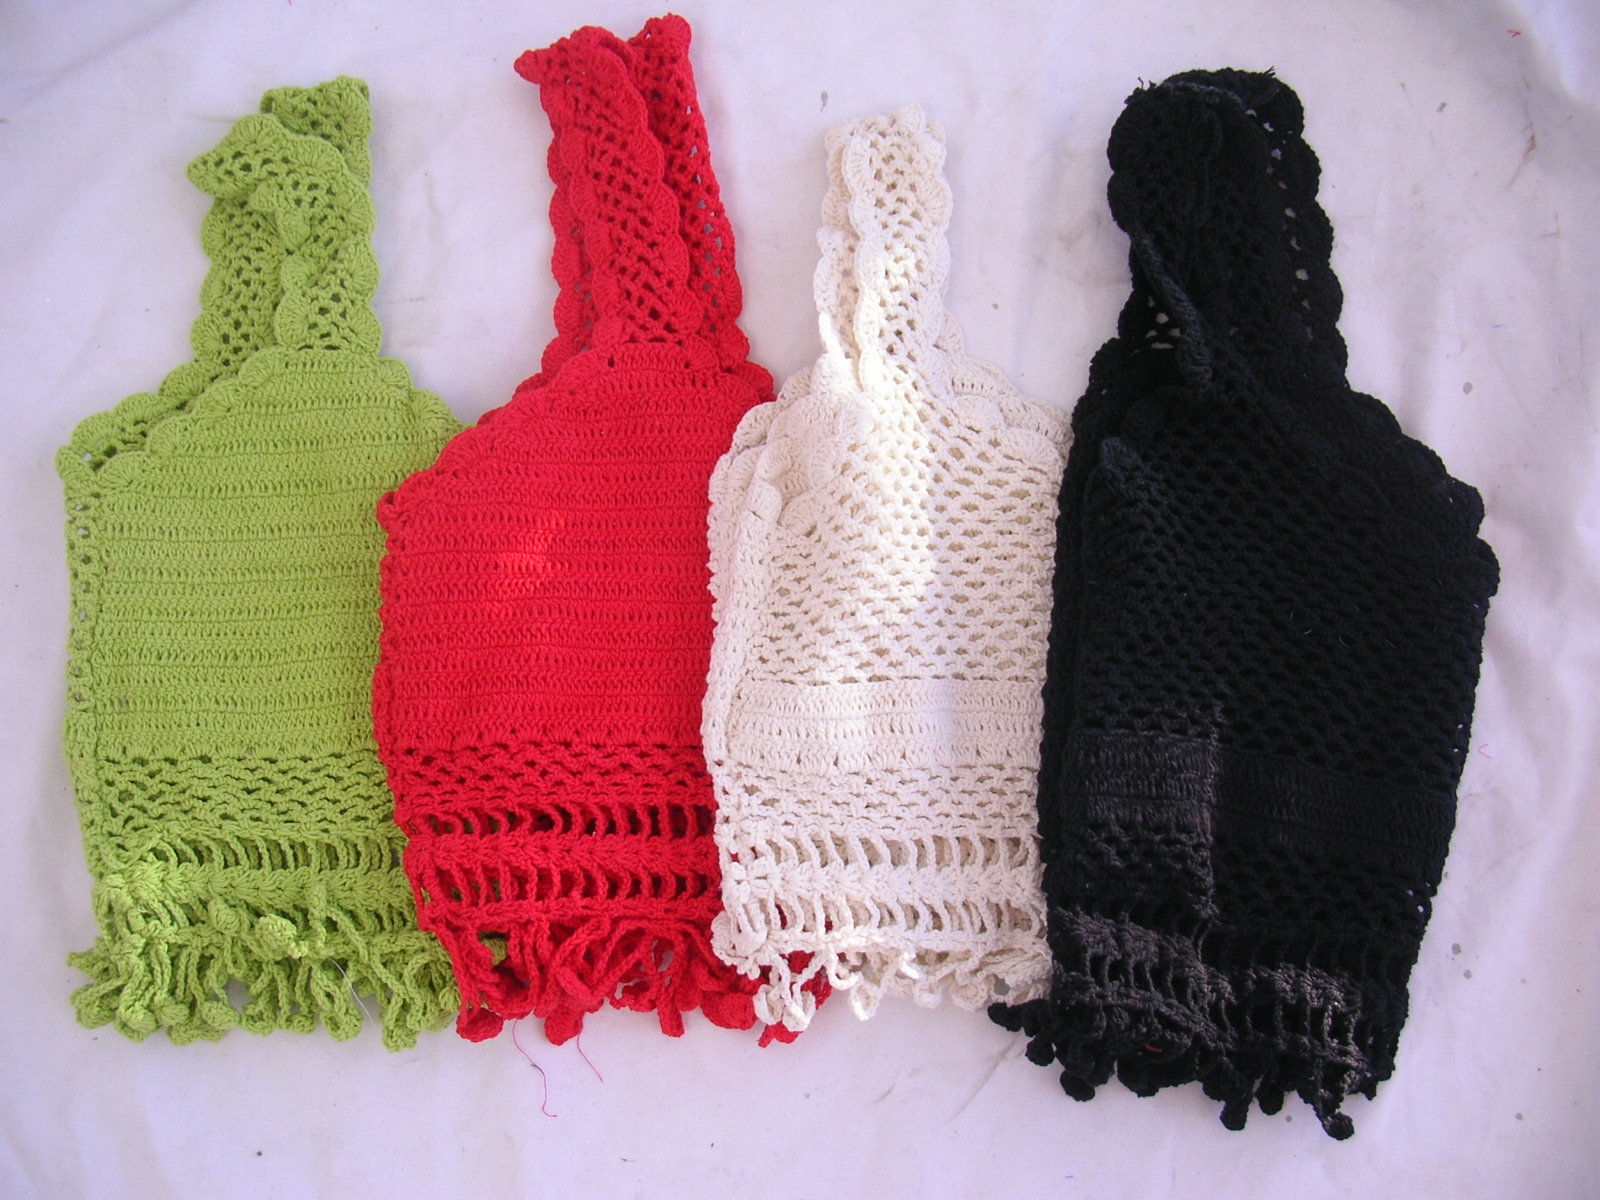 Crochet Halter Tops - All For Crochet